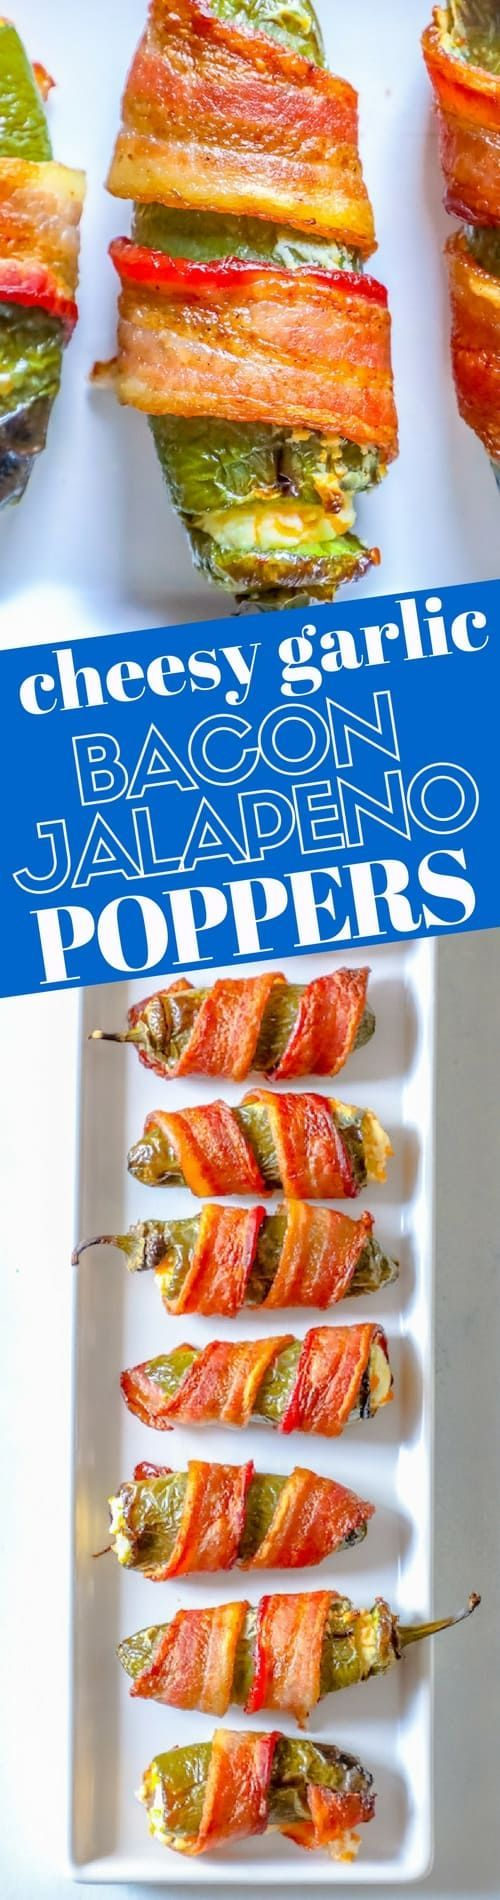 Bacon Wrapped Cheddar and Garlic Jalapeno Poppers ⋆ Sweet C's Designs